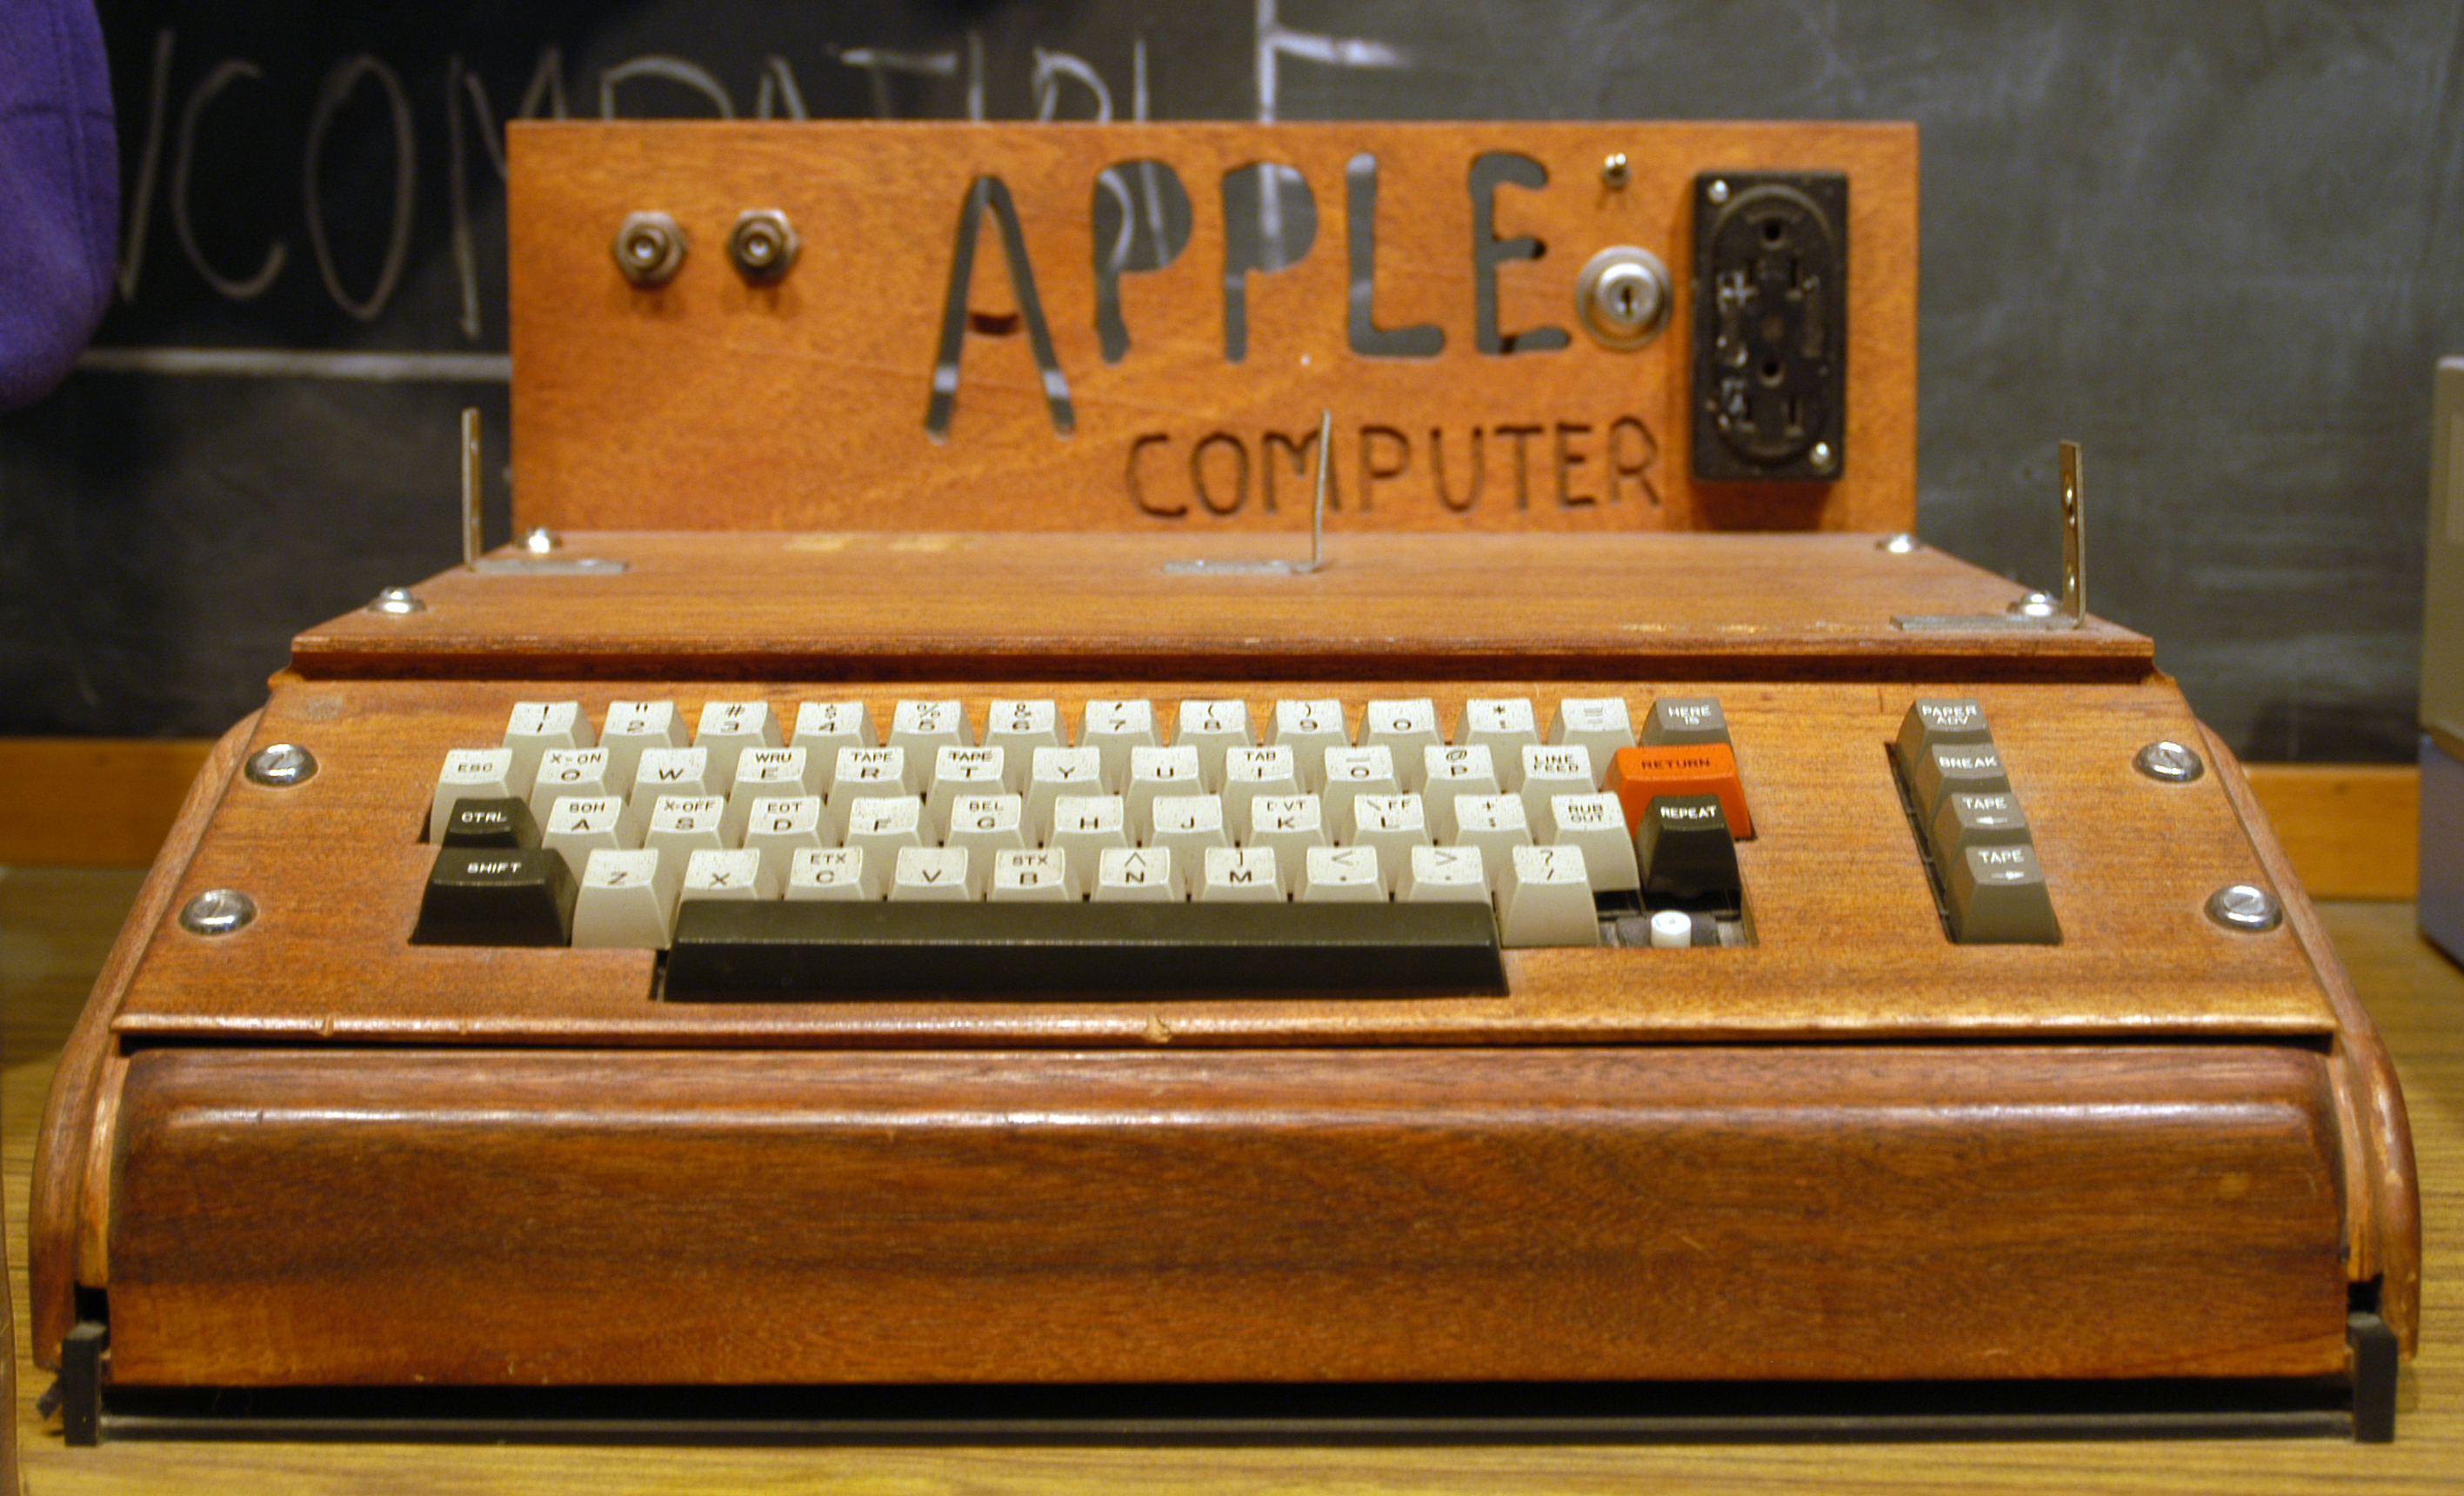 Legendary computer Apple-1 sells for $365,000 in auction